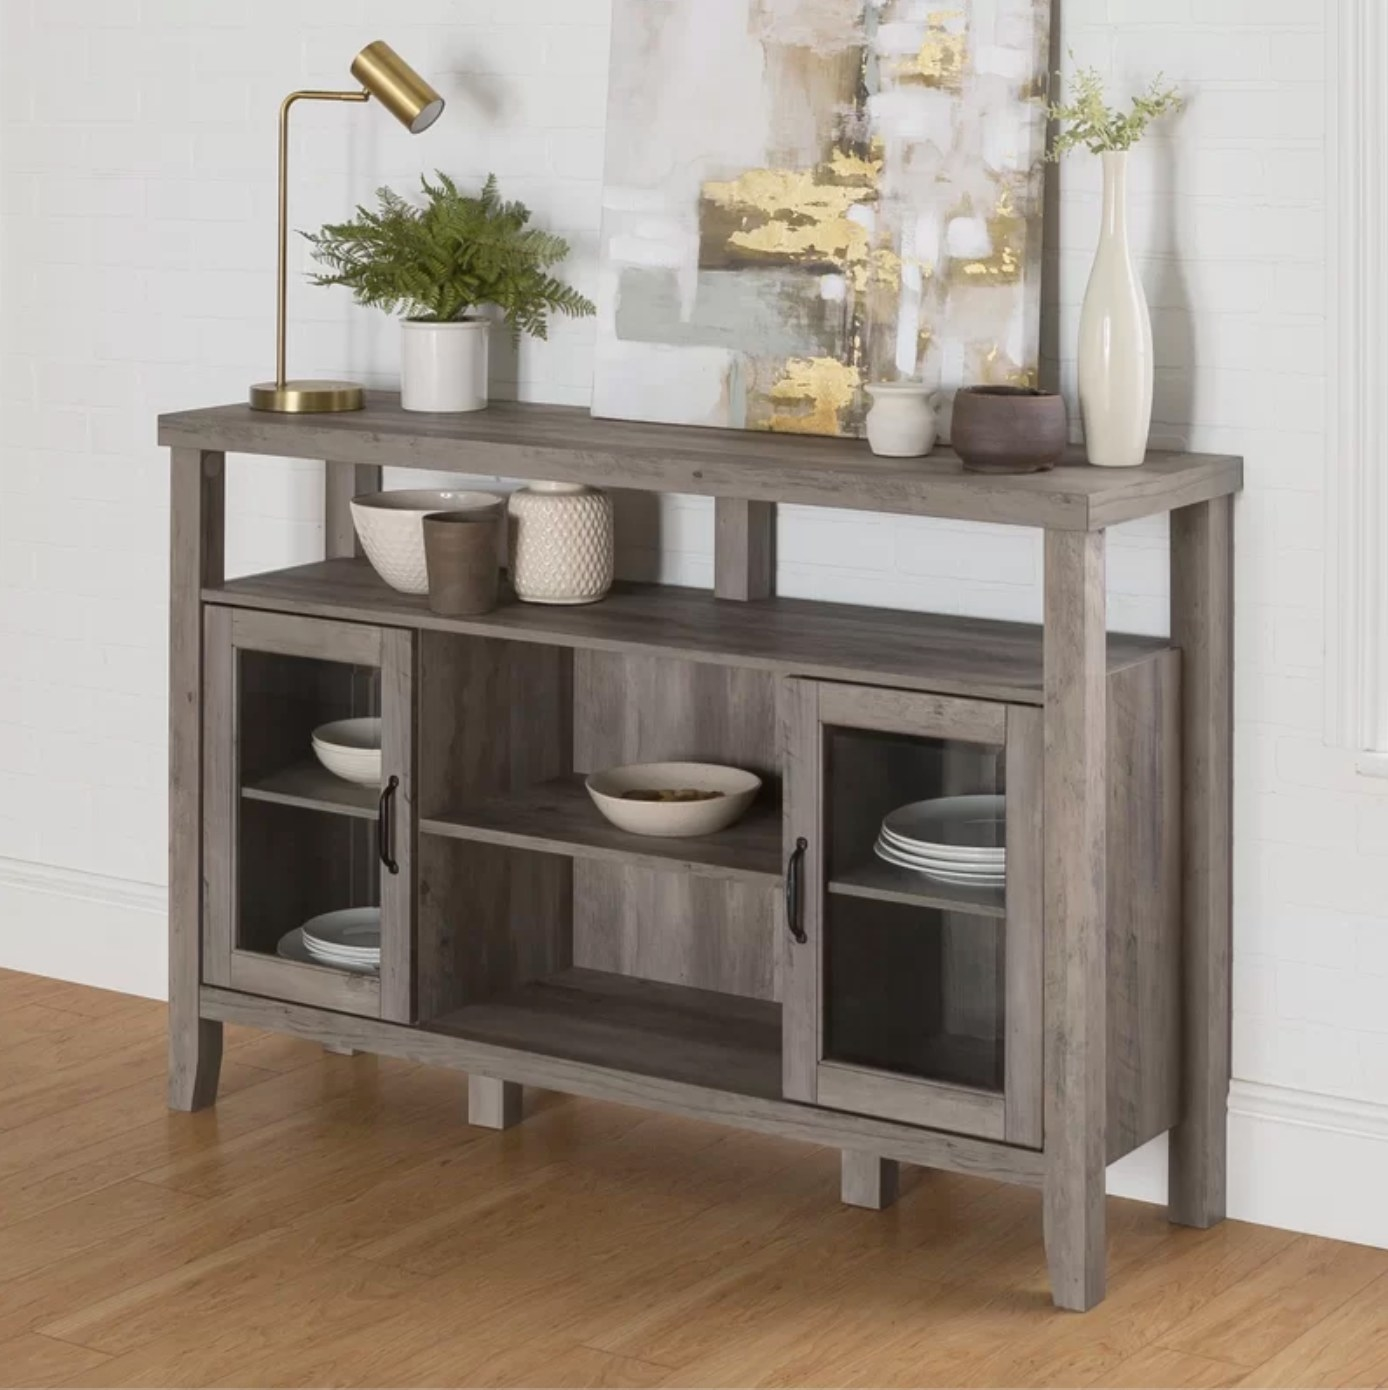 The sideboard in gray wash